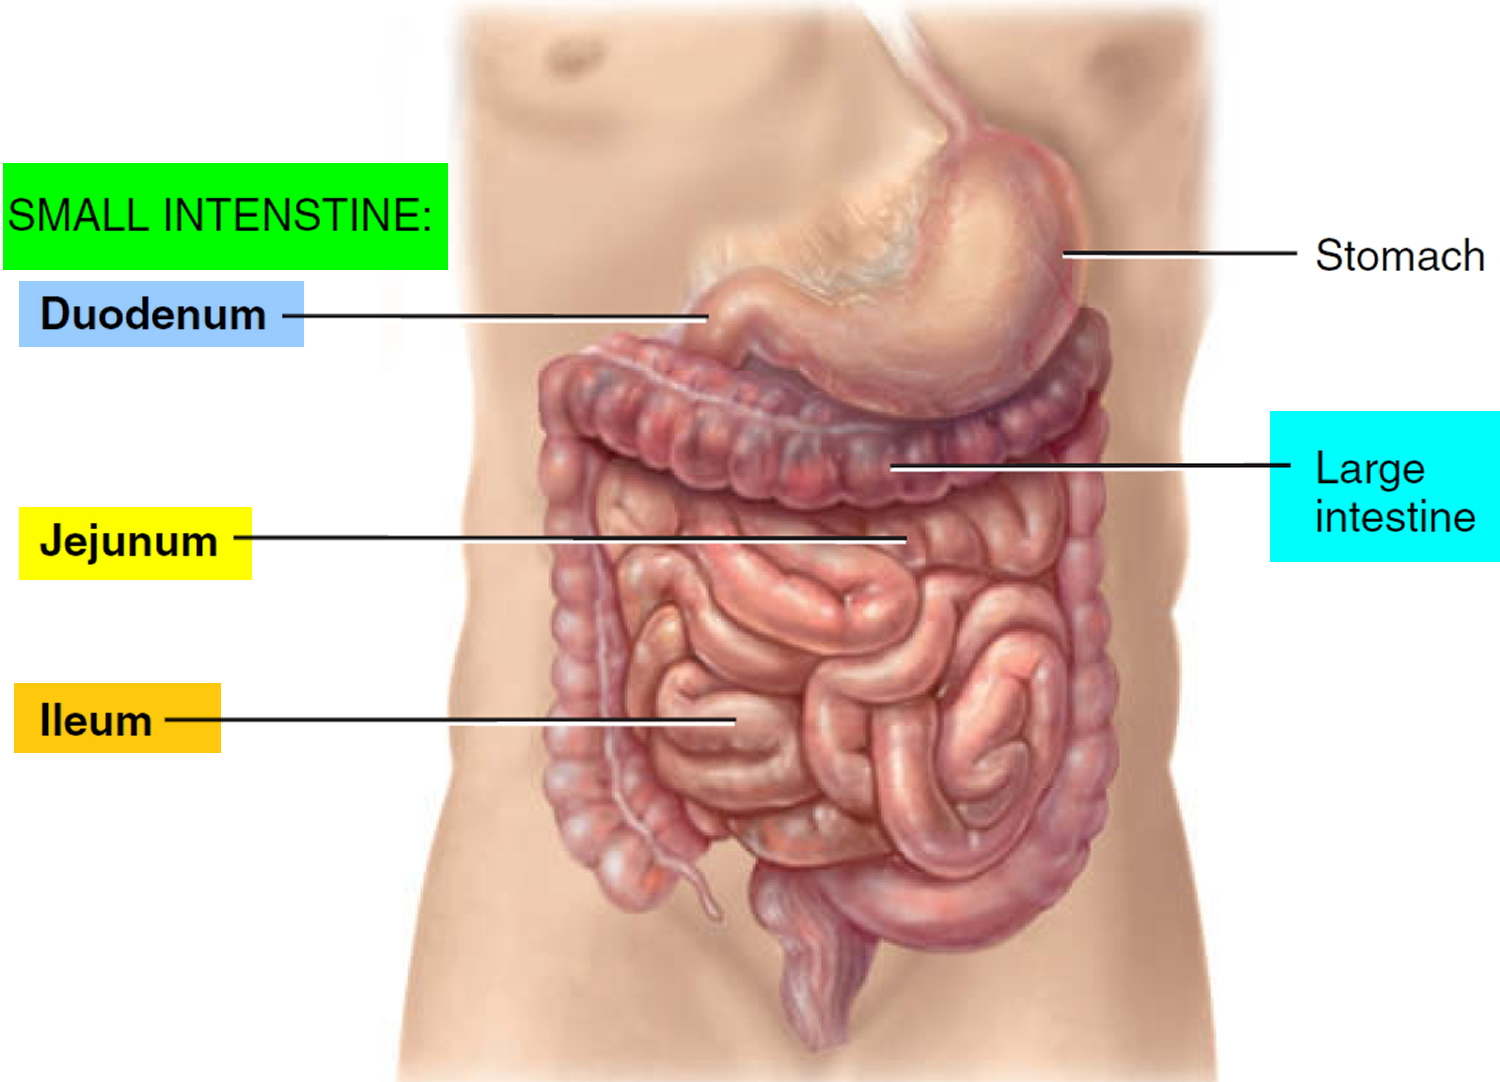 Bowel Obstruction - Small & Large - Causes, Symptoms, Treatment